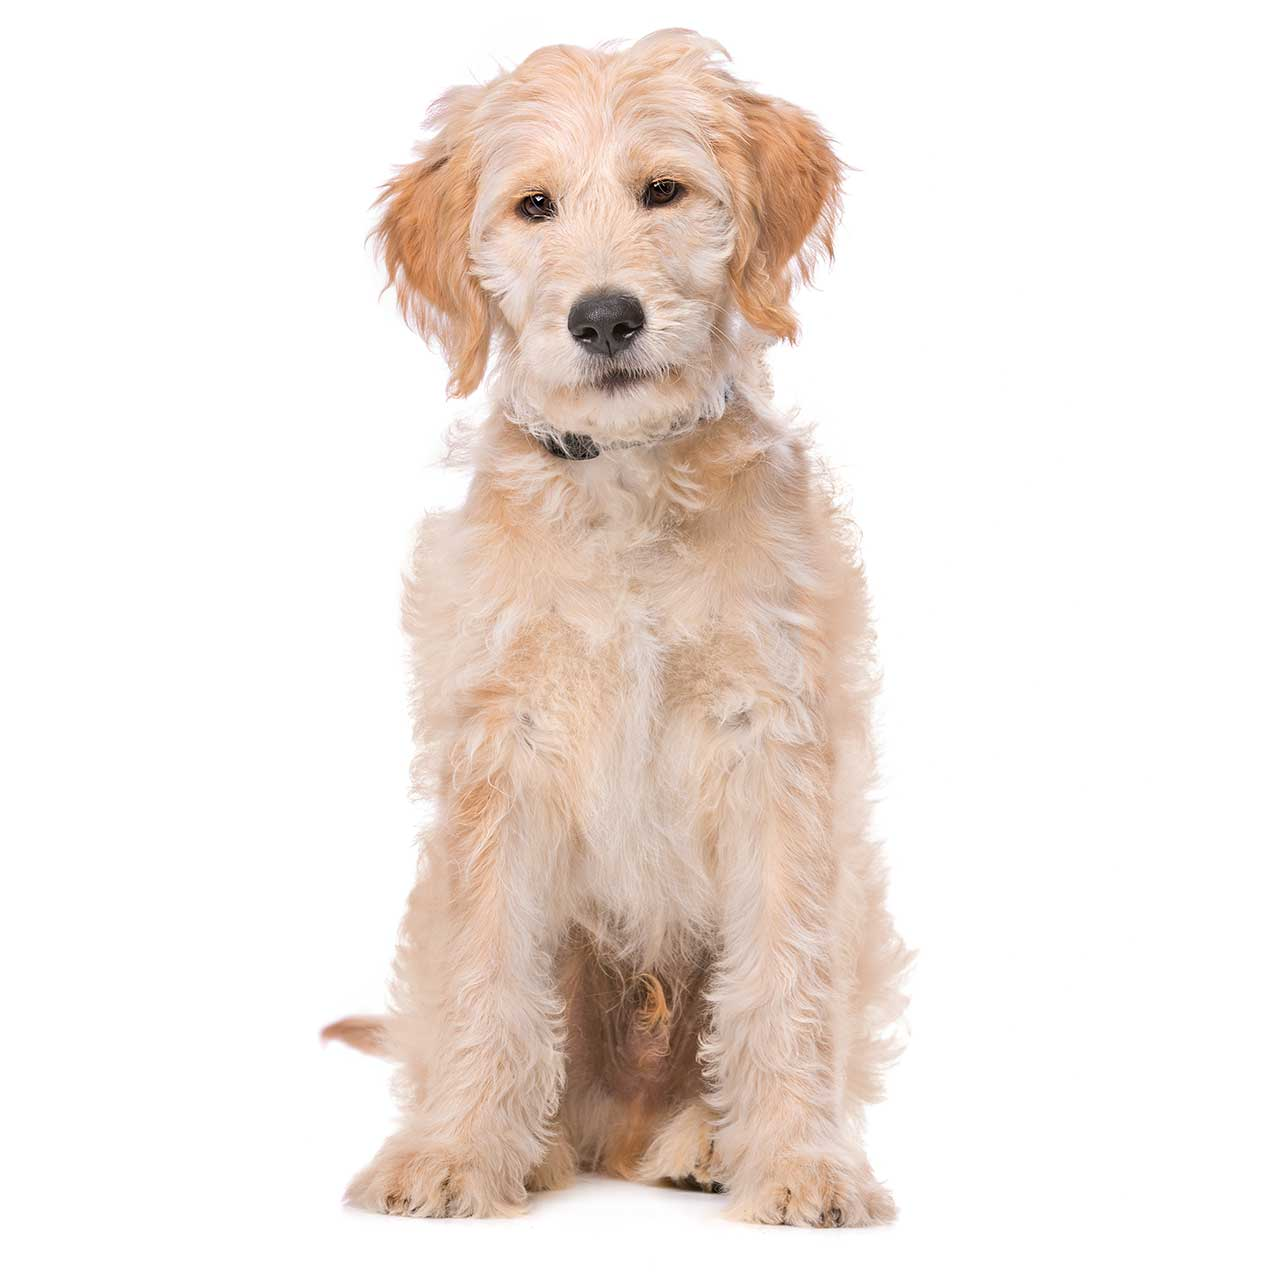 Labradoodle Dog Breed 187 Everything About Labradoodles